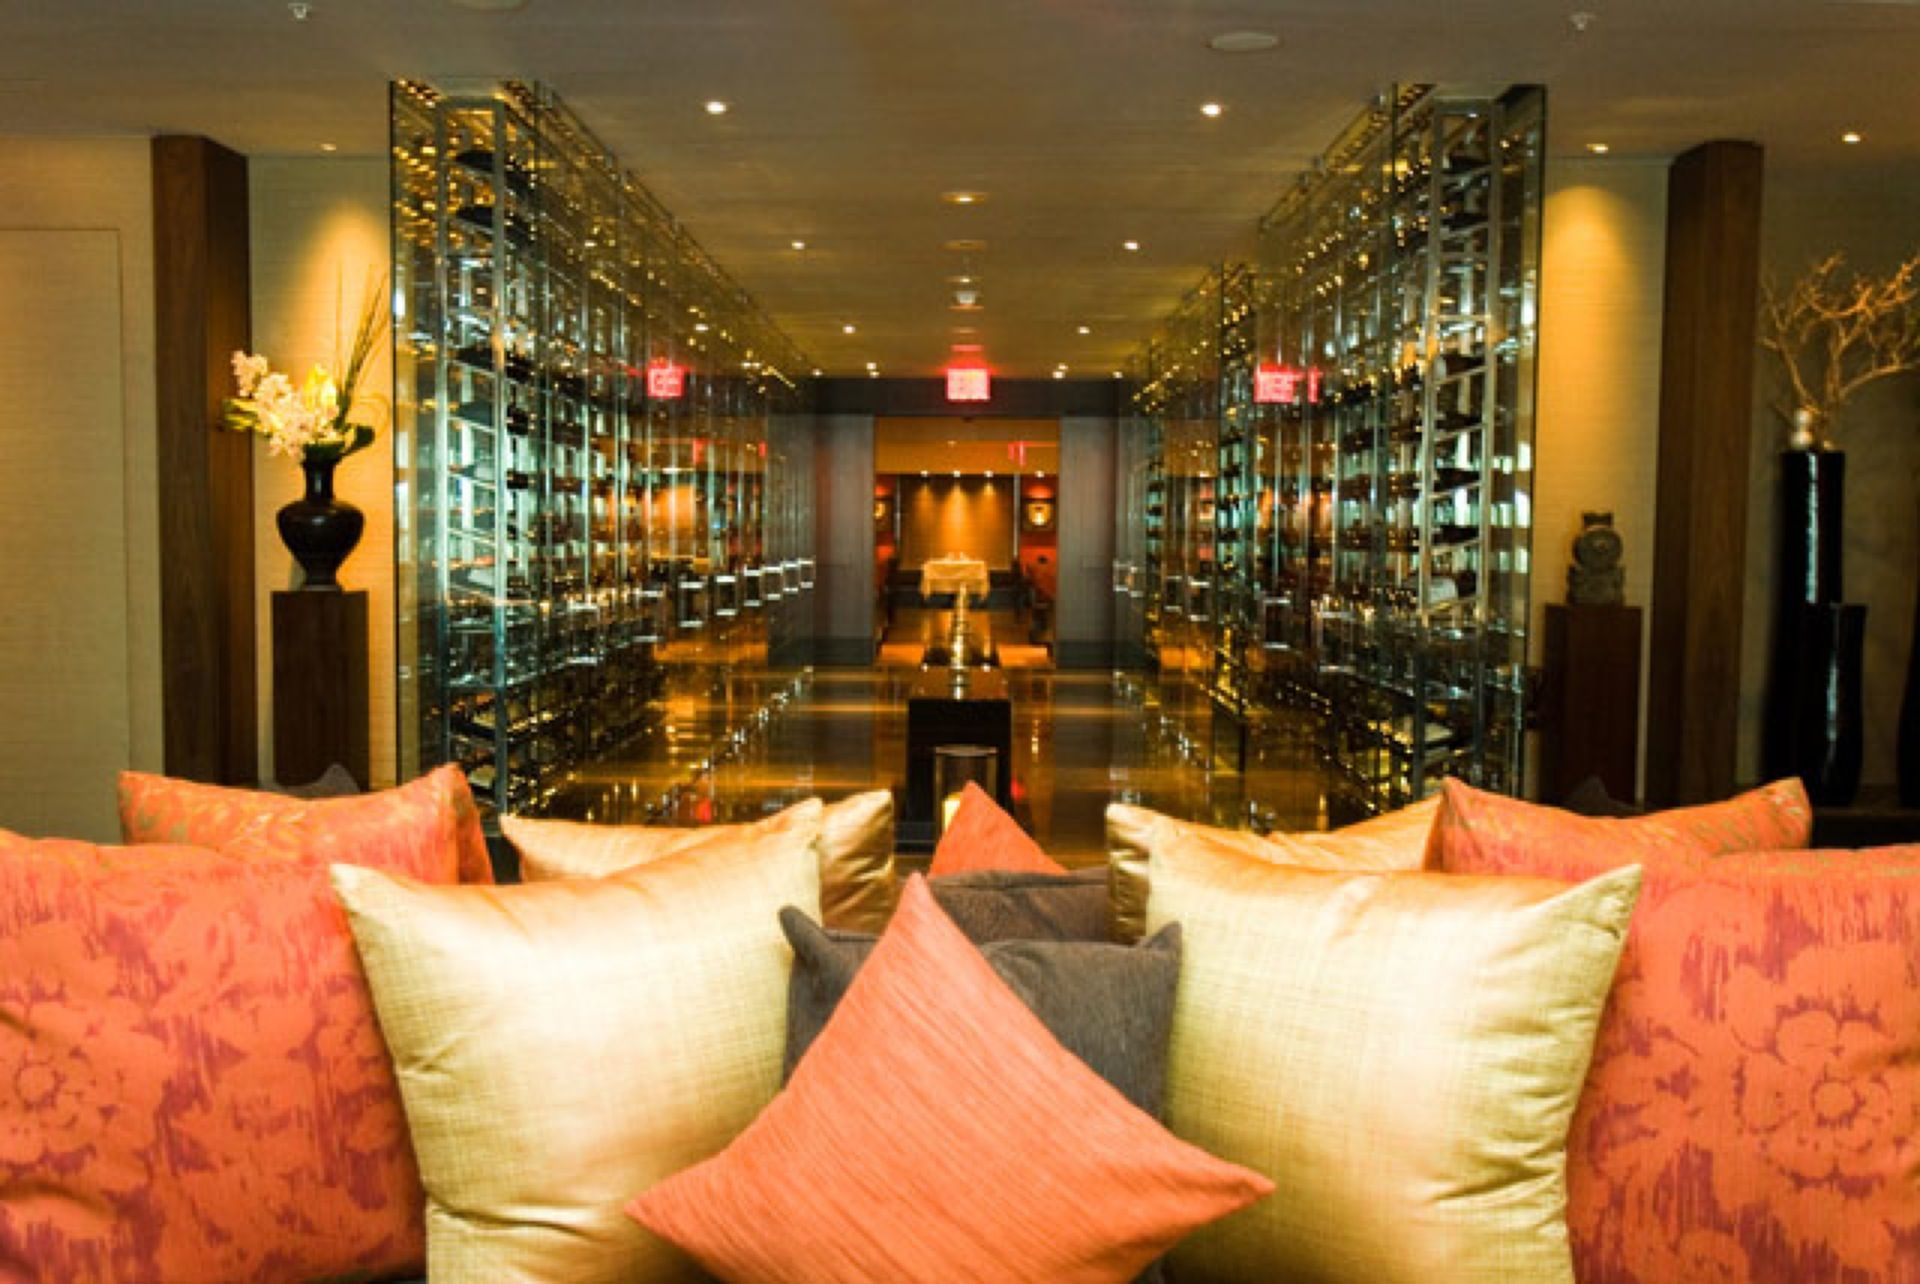 A Contemporary New Kosher Restaurant At The Setai Wall Street Reserve Cut Features An Asian Decor And Menu With French Fusion Dishes